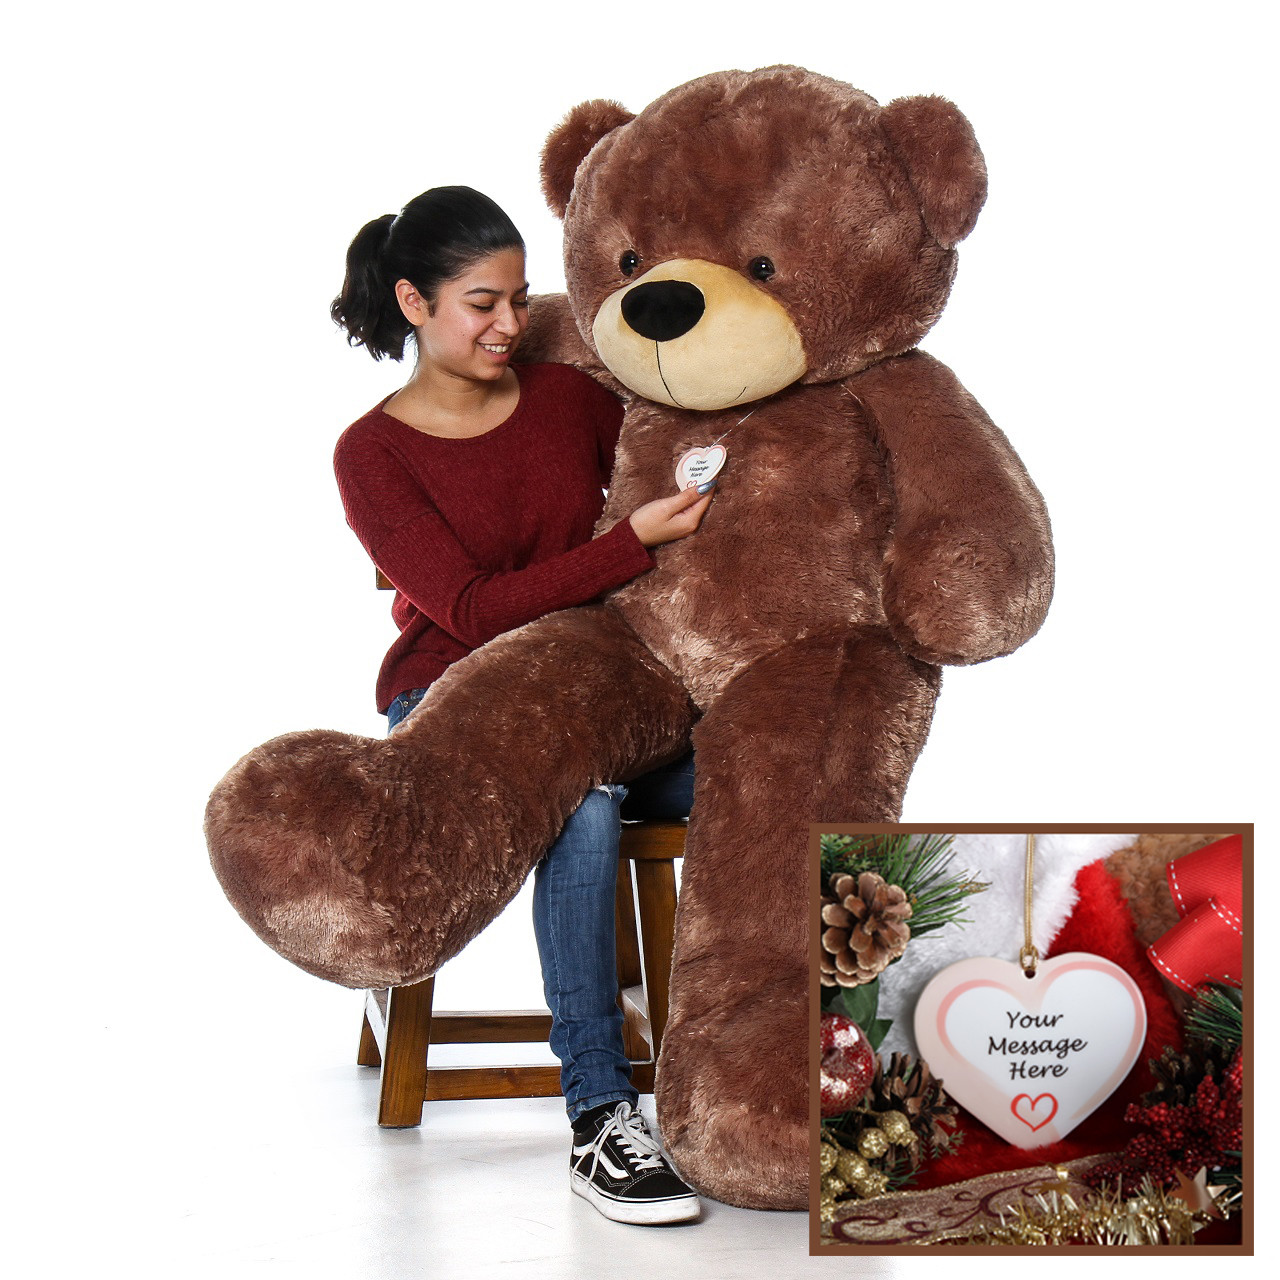 1d2c3884ebd6 Christmas Package - 5 Foot Life Size Giant Teddy Bear Cuddles with ...